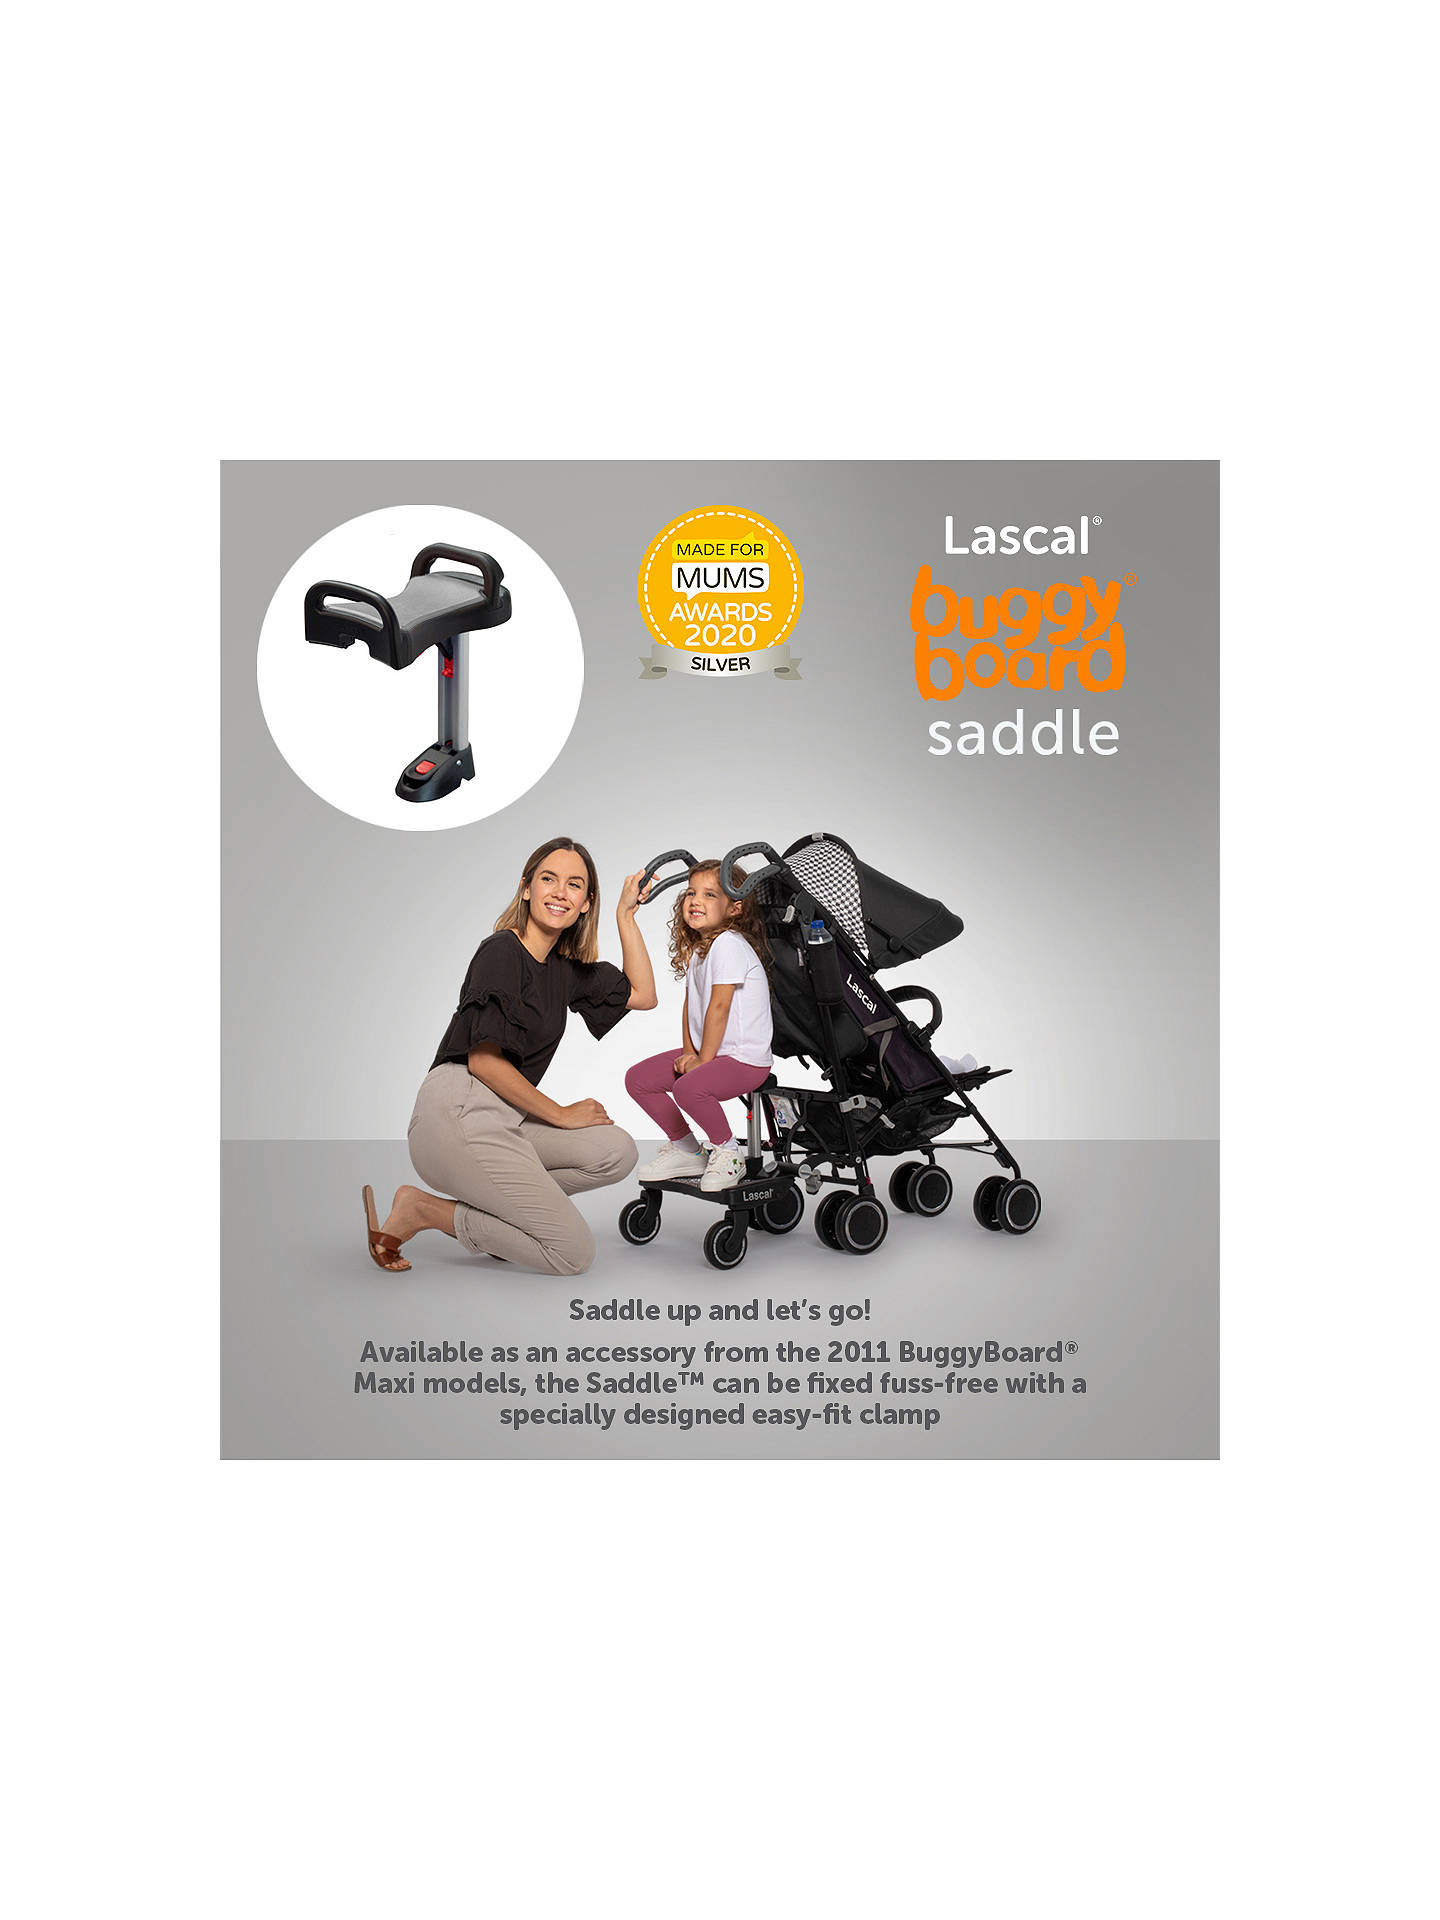 Lascal Buggy Board sadle